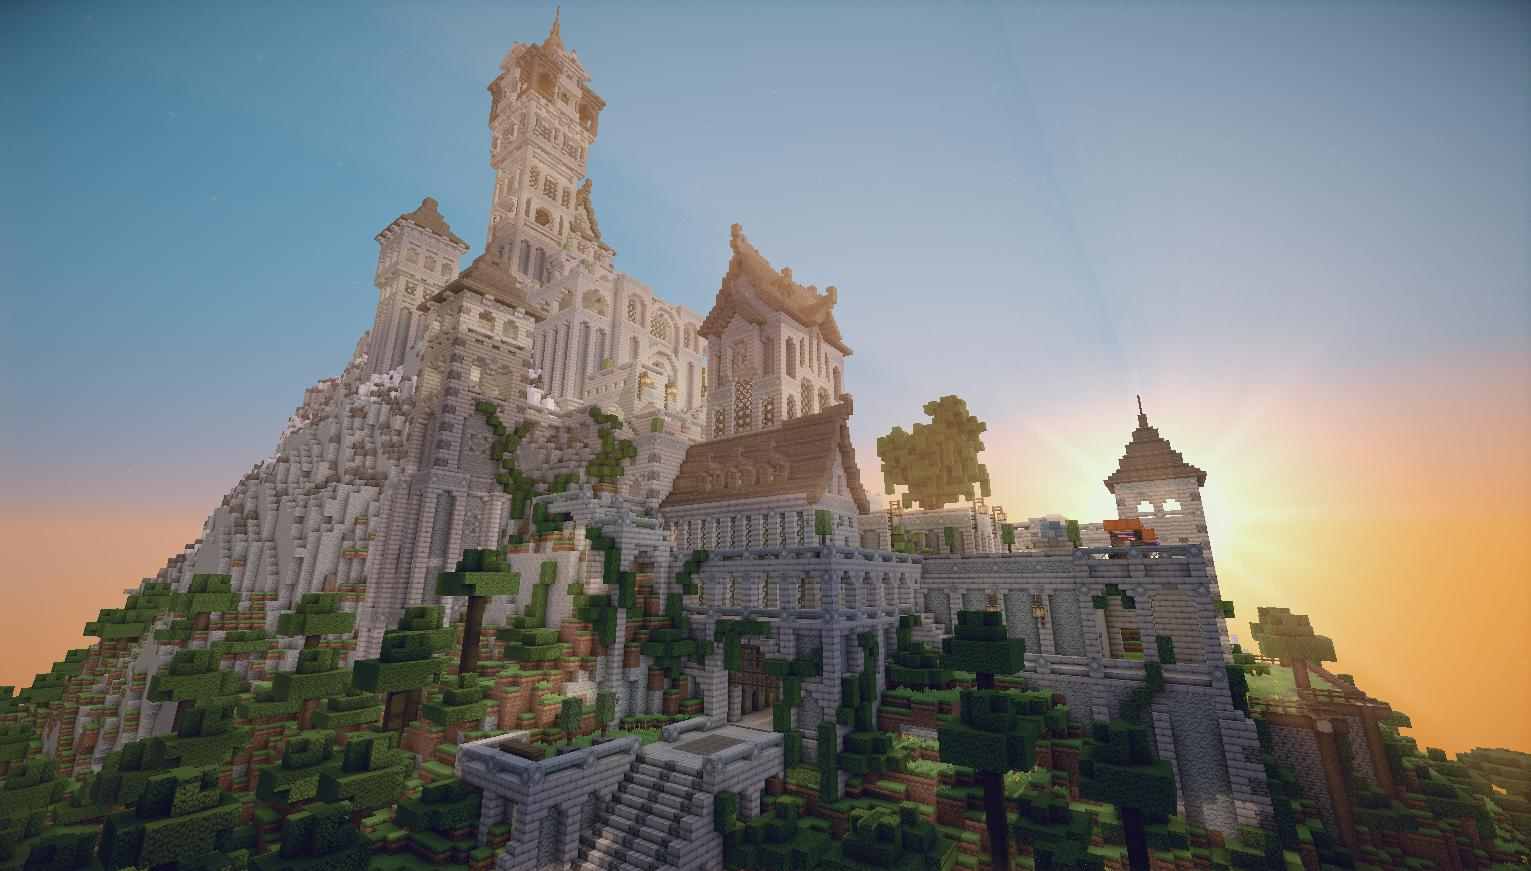 minecraft survival maps 1 8 with Magnifique Chateau on Map Survival Solo Ou Multi Survival Horror together with Soundless Background Mod additionally Quad Mountain Survival Map furthermore Gta Los Santos Map For Minecraft besides Showthread.